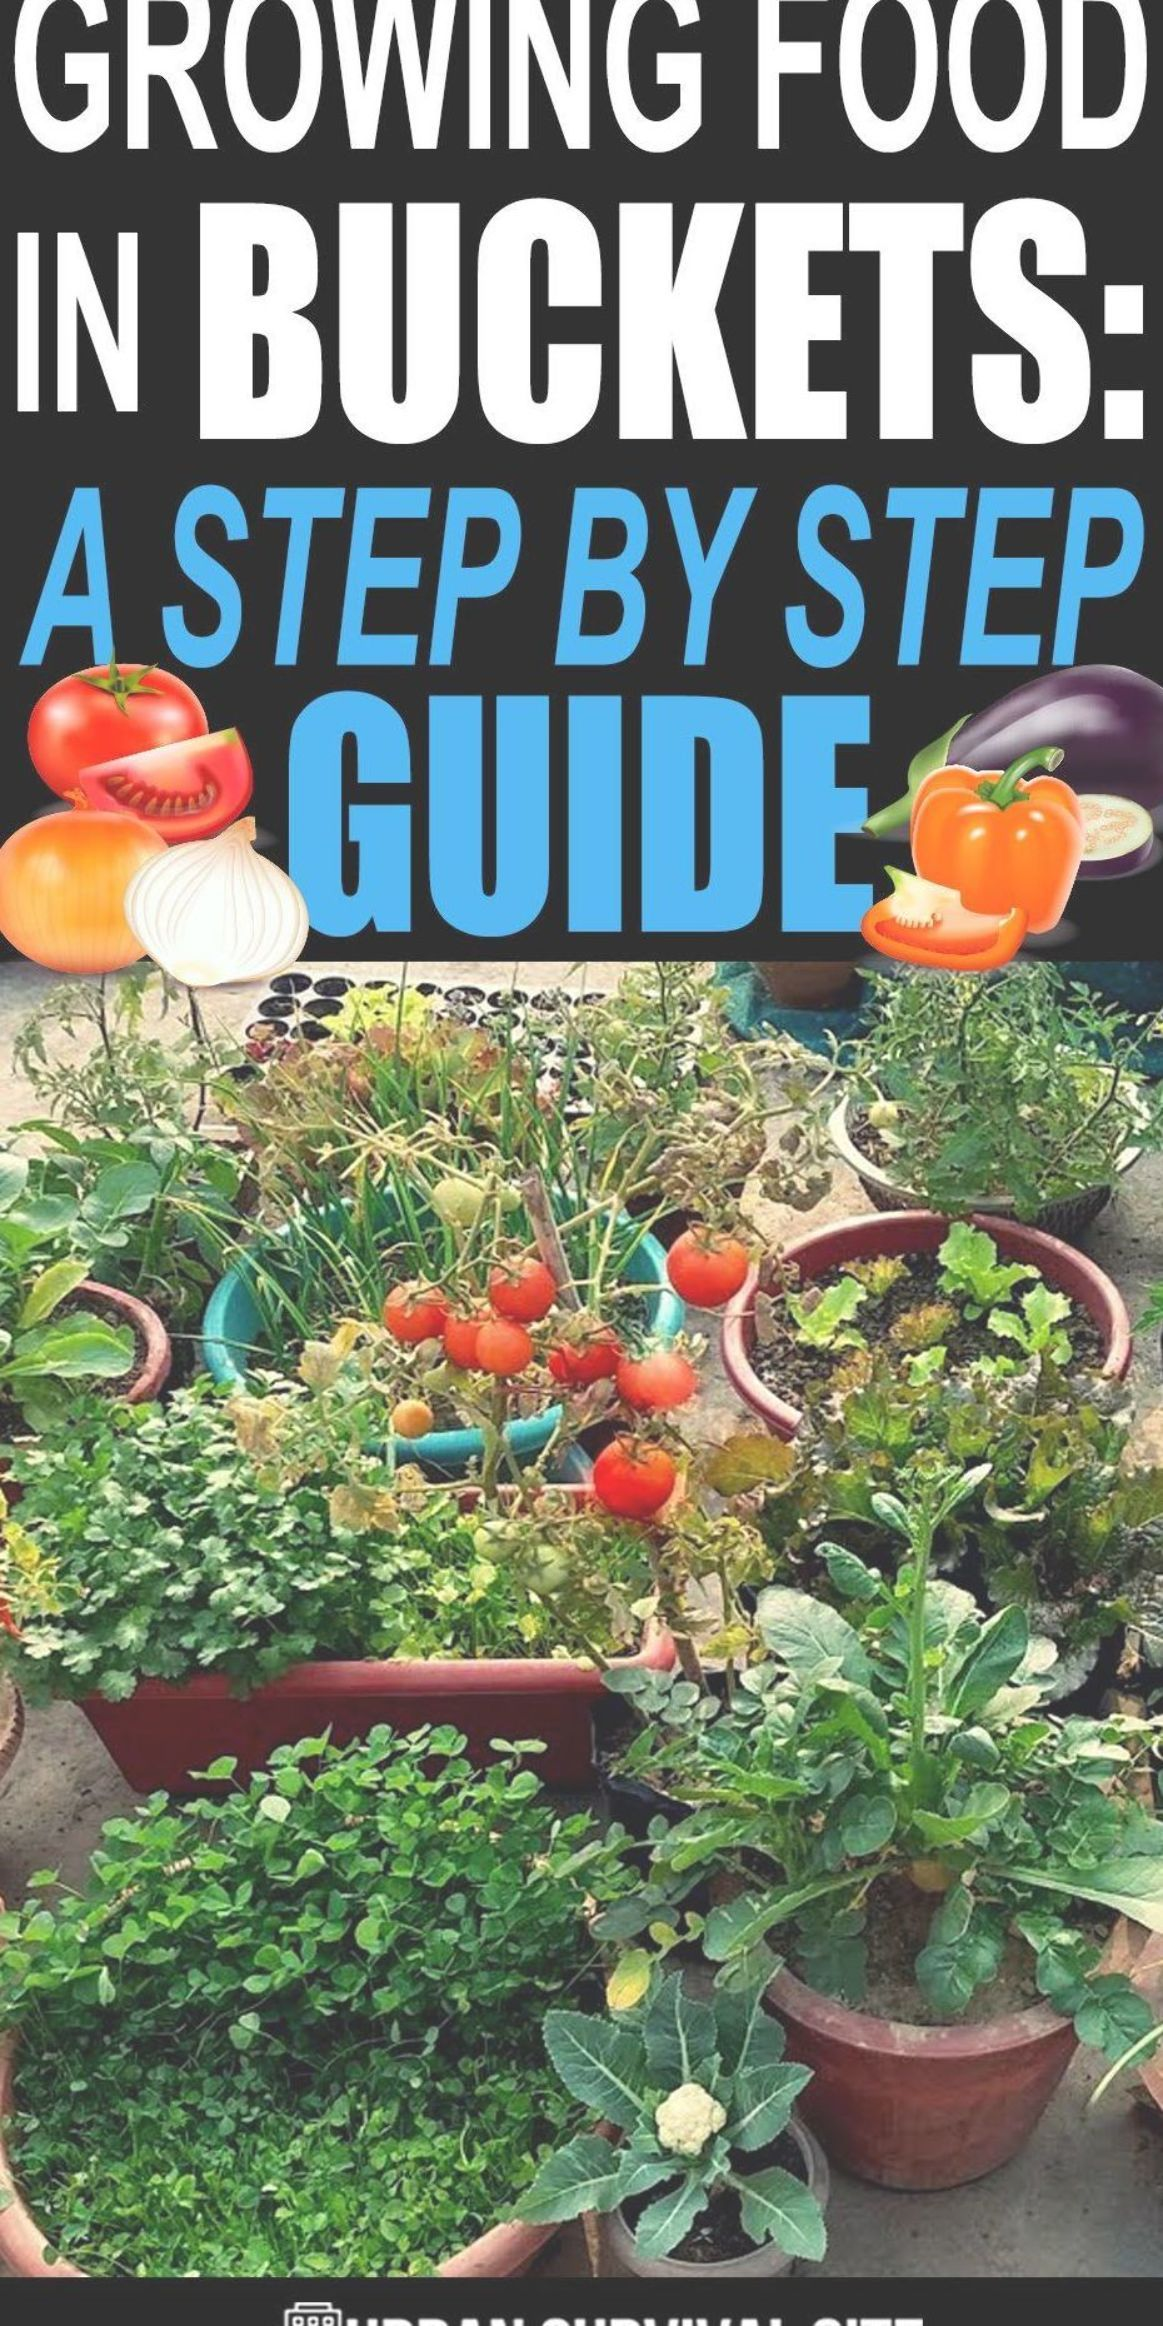 2c7d9102560599815353bed8faa85603 - Grow Food Anywhere The New Guide To Small Space Gardening